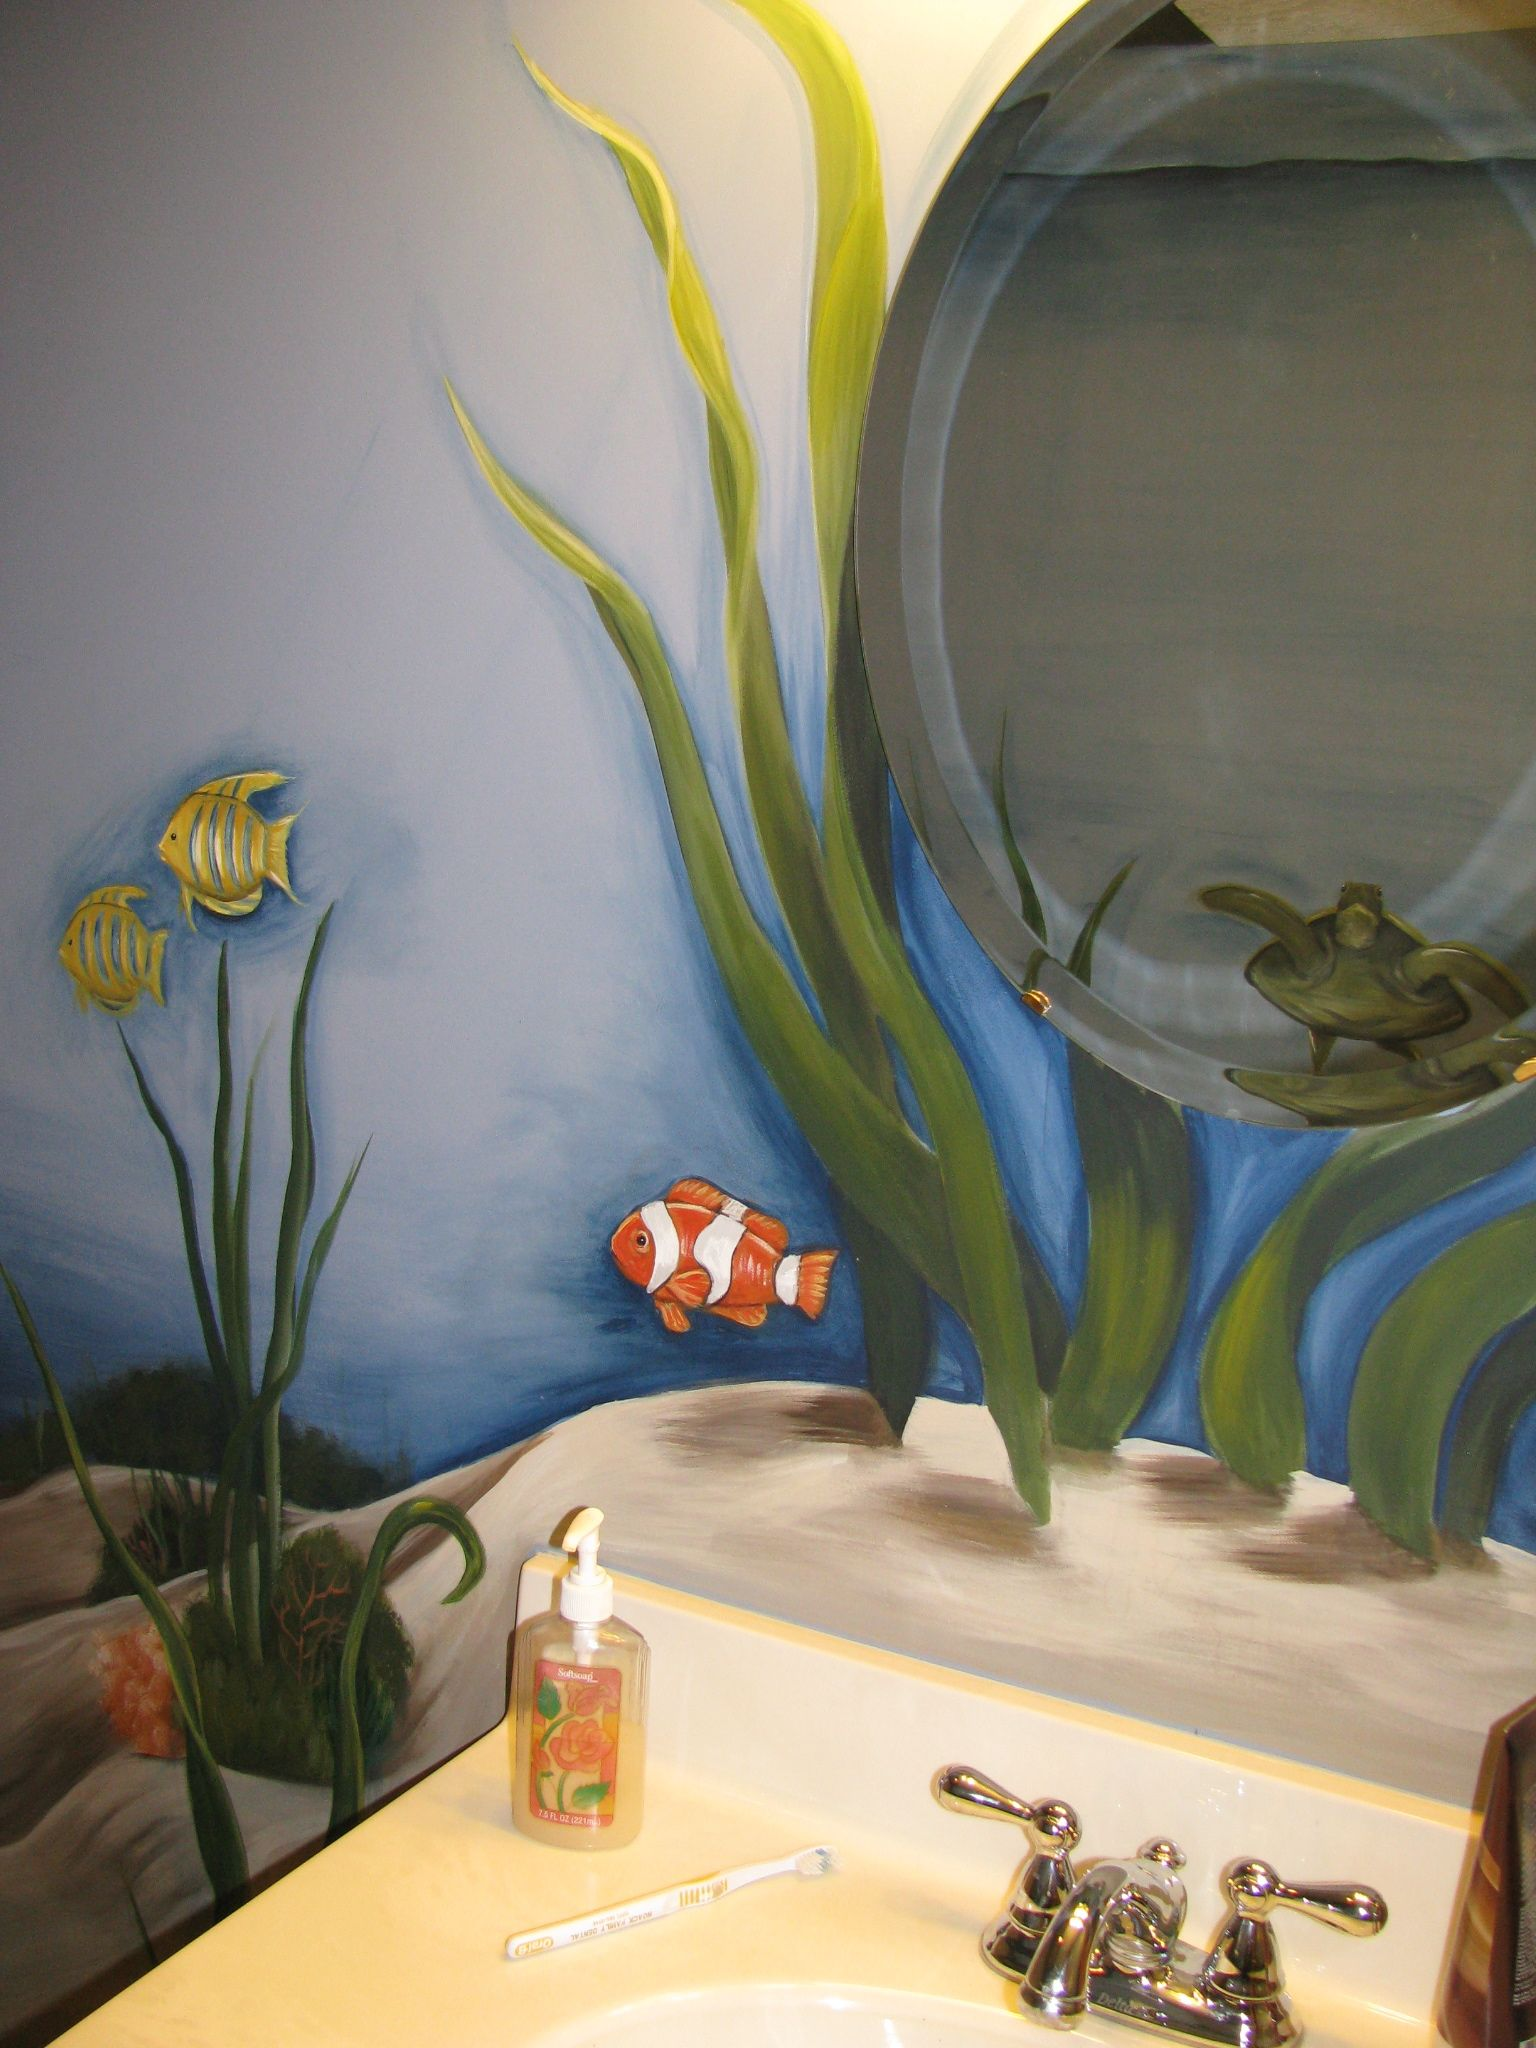 Underwater Bathroom (See the turtle reflection in the